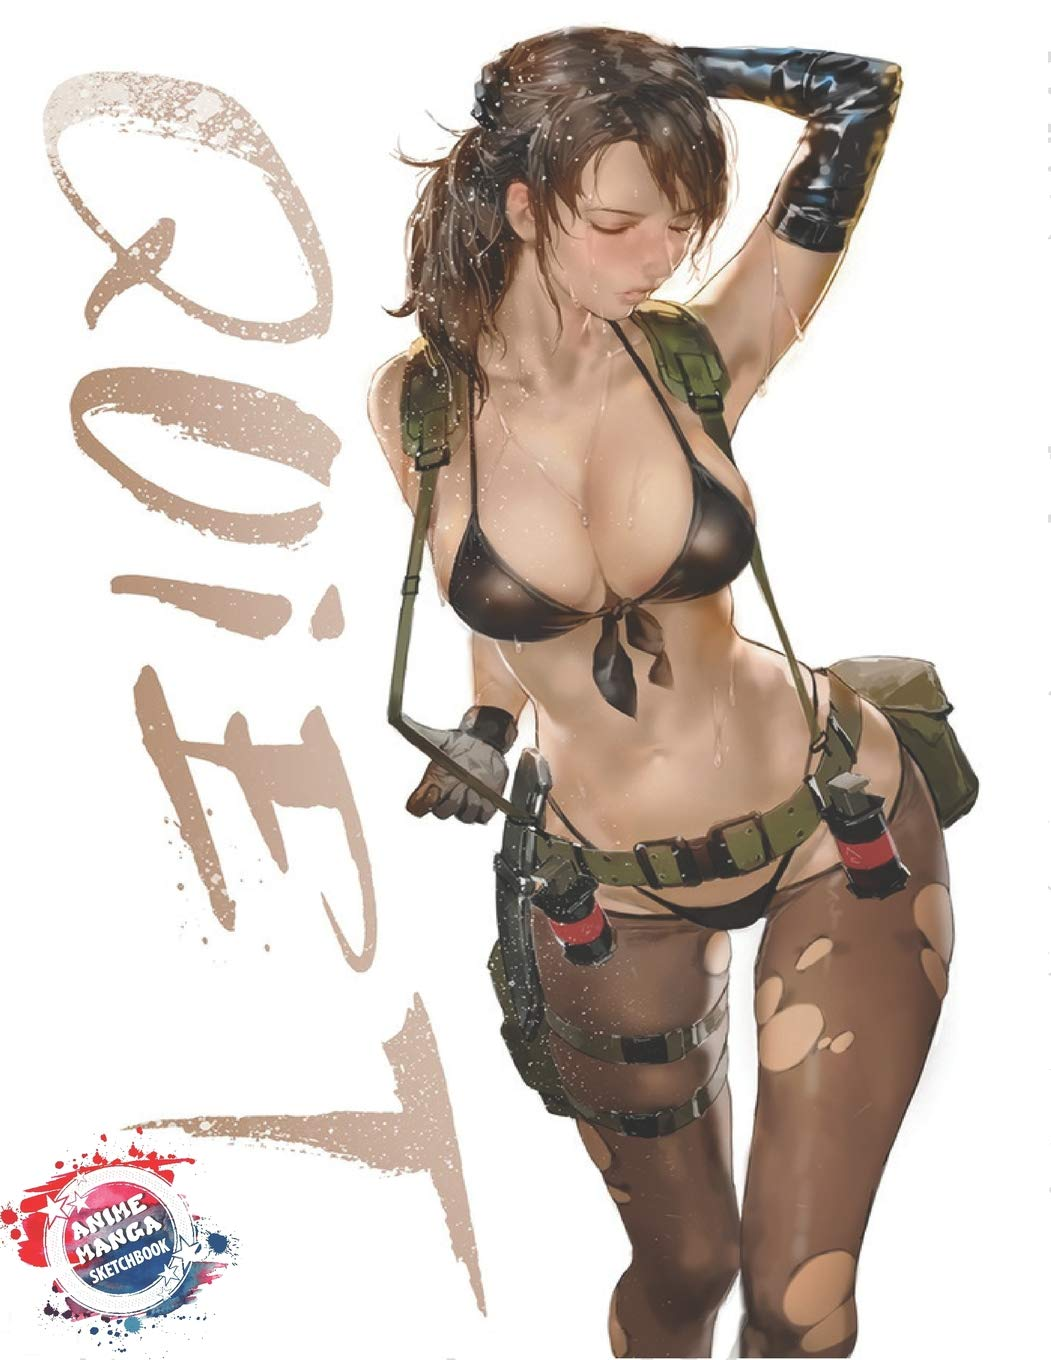 Anime Manga Sketchbook  American Soldier Female Assassin Sniper Cute Kawaii Sexy Anime Girl Cover   Blank Paper For Drawing Sketching And Doodling ... And Journal  Inkway Anime Zone Band 24